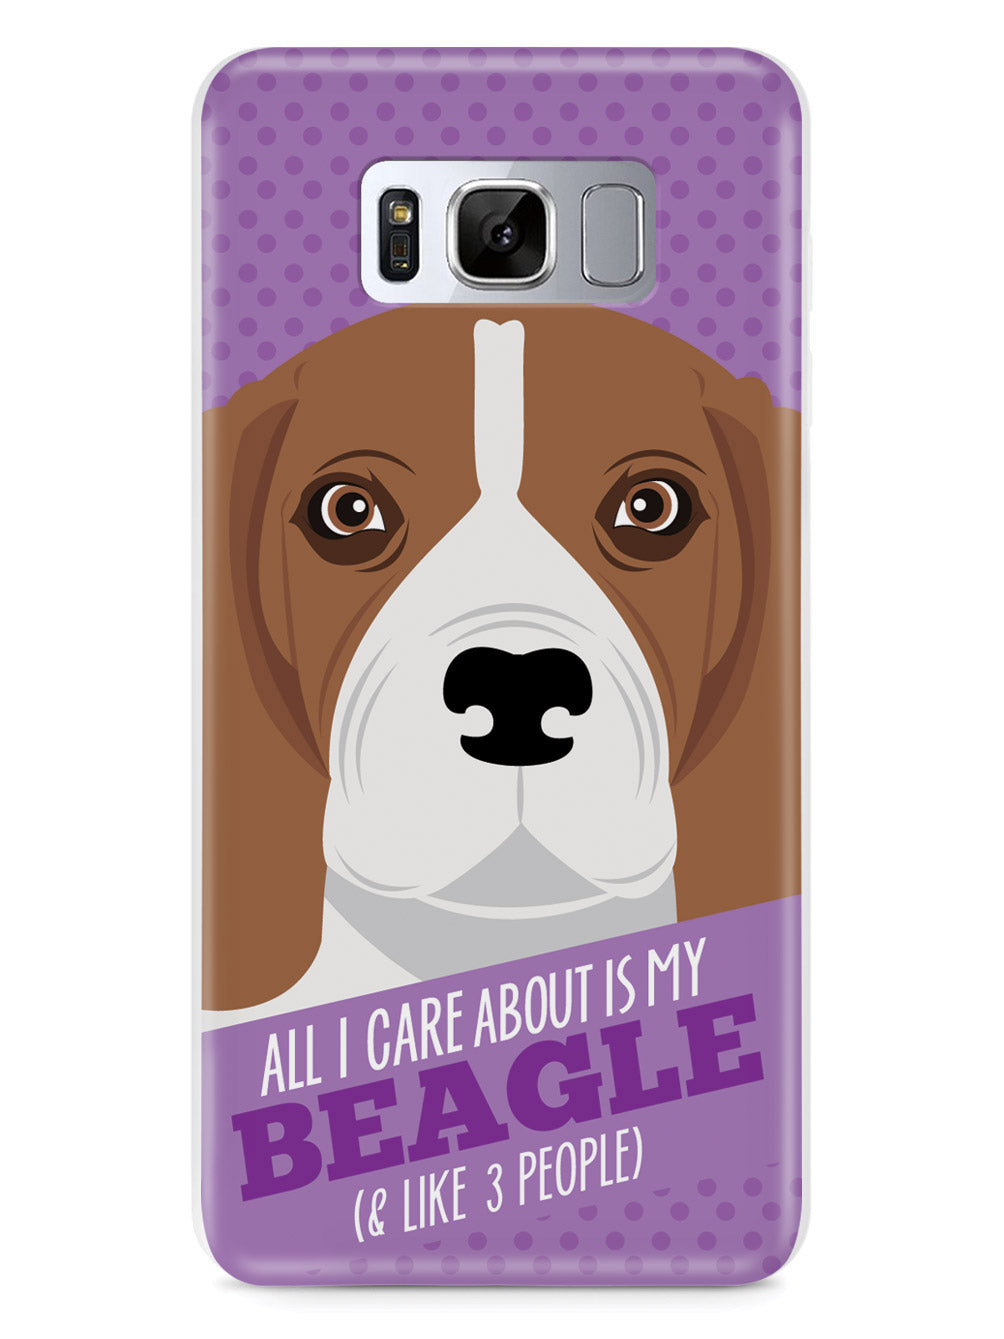 All I Care About Is My Beagle Case